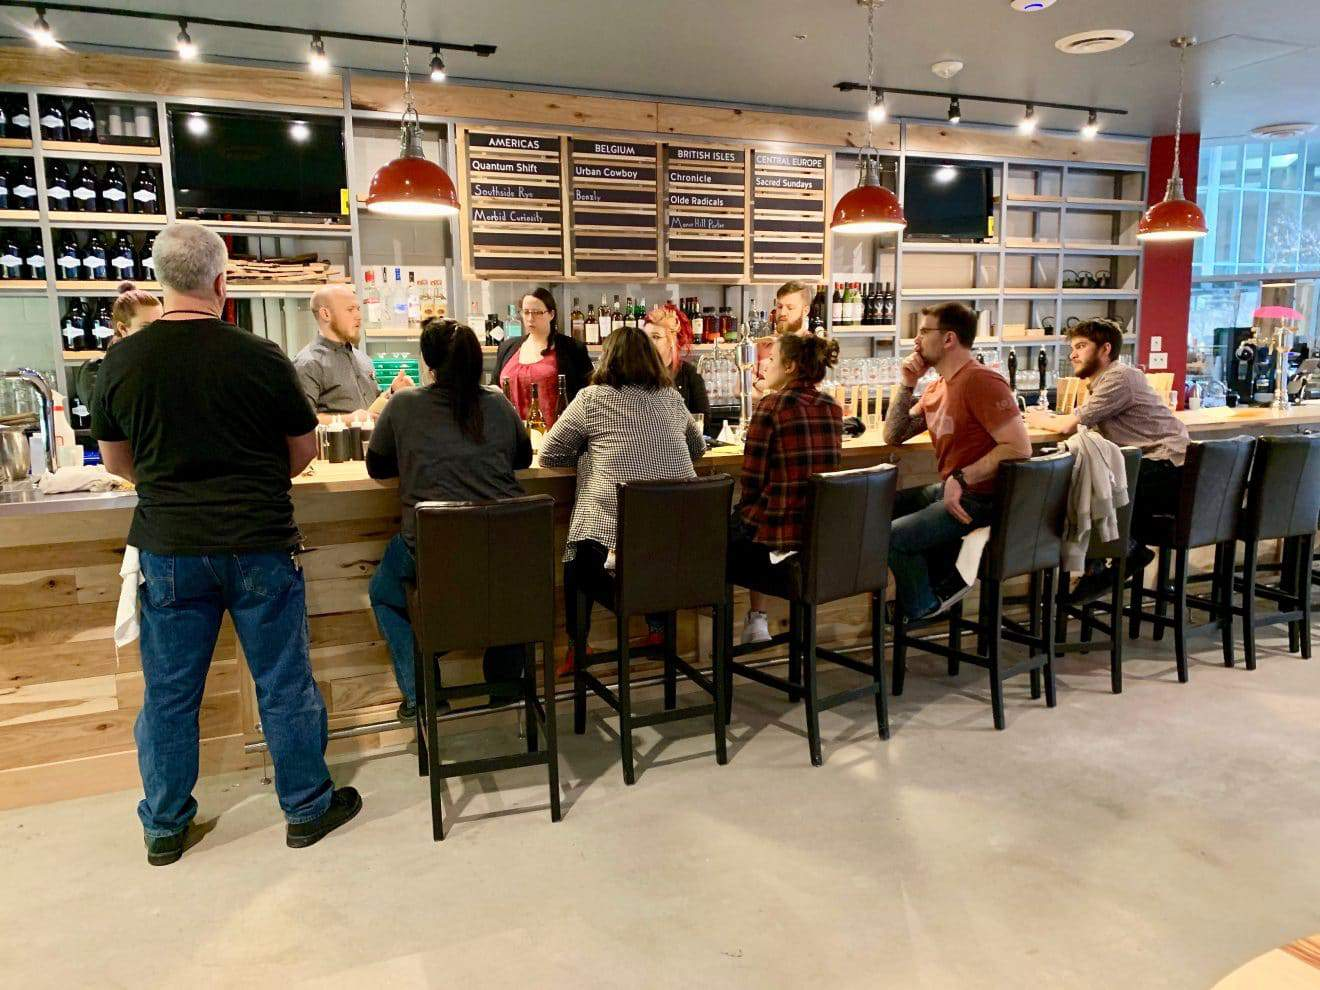 Third Brewery's Grand Opening Set for Sunday, March 3 - Silver Spring's third downtown brewery will hold its grand opening at 1 p.m. Sunday, March 3, according to cofounders Brett Robison and Christian Layke.